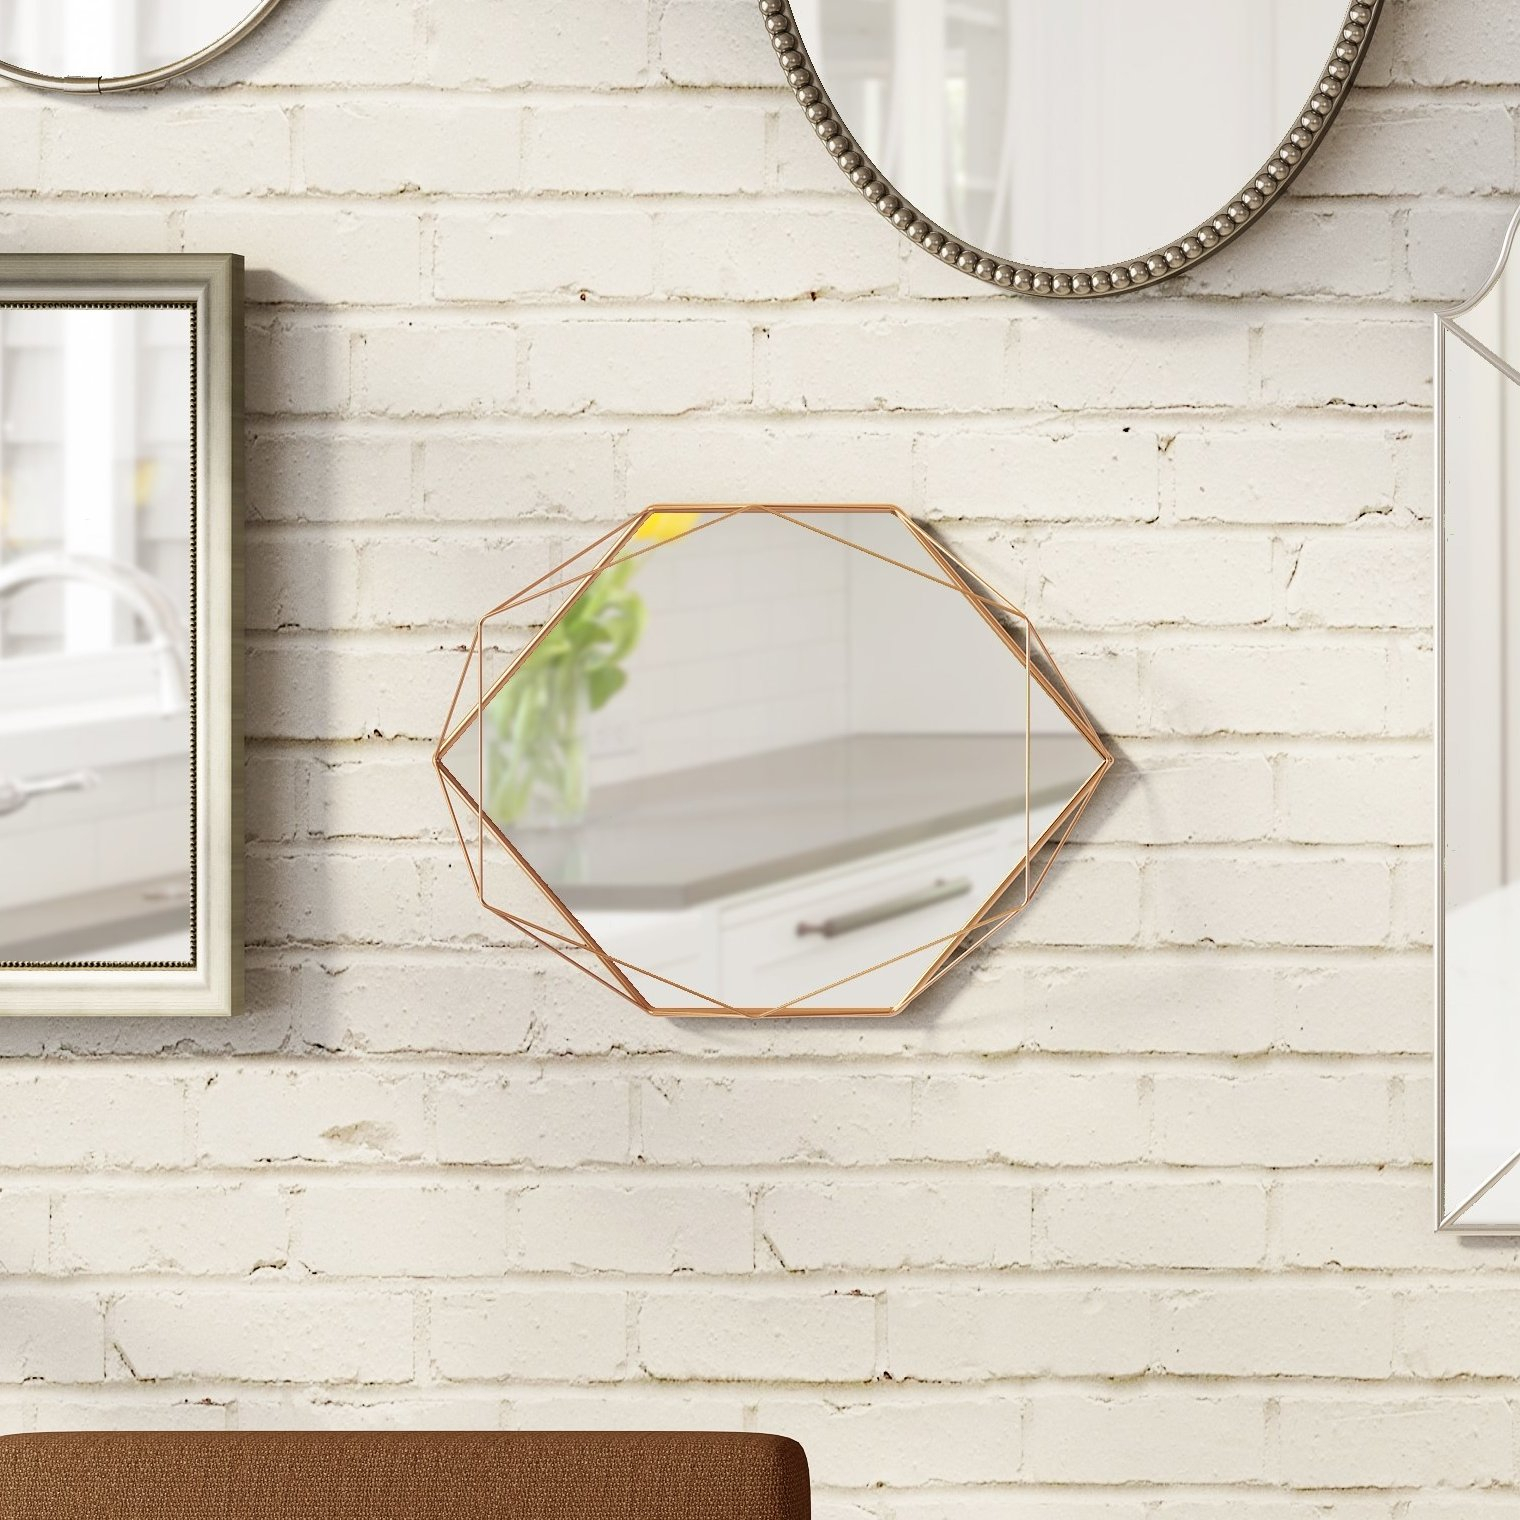 Prisma Modern & Contemporary Accent Mirror With Regard To Guidinha Modern & Contemporary Accent Mirrors (View 7 of 30)